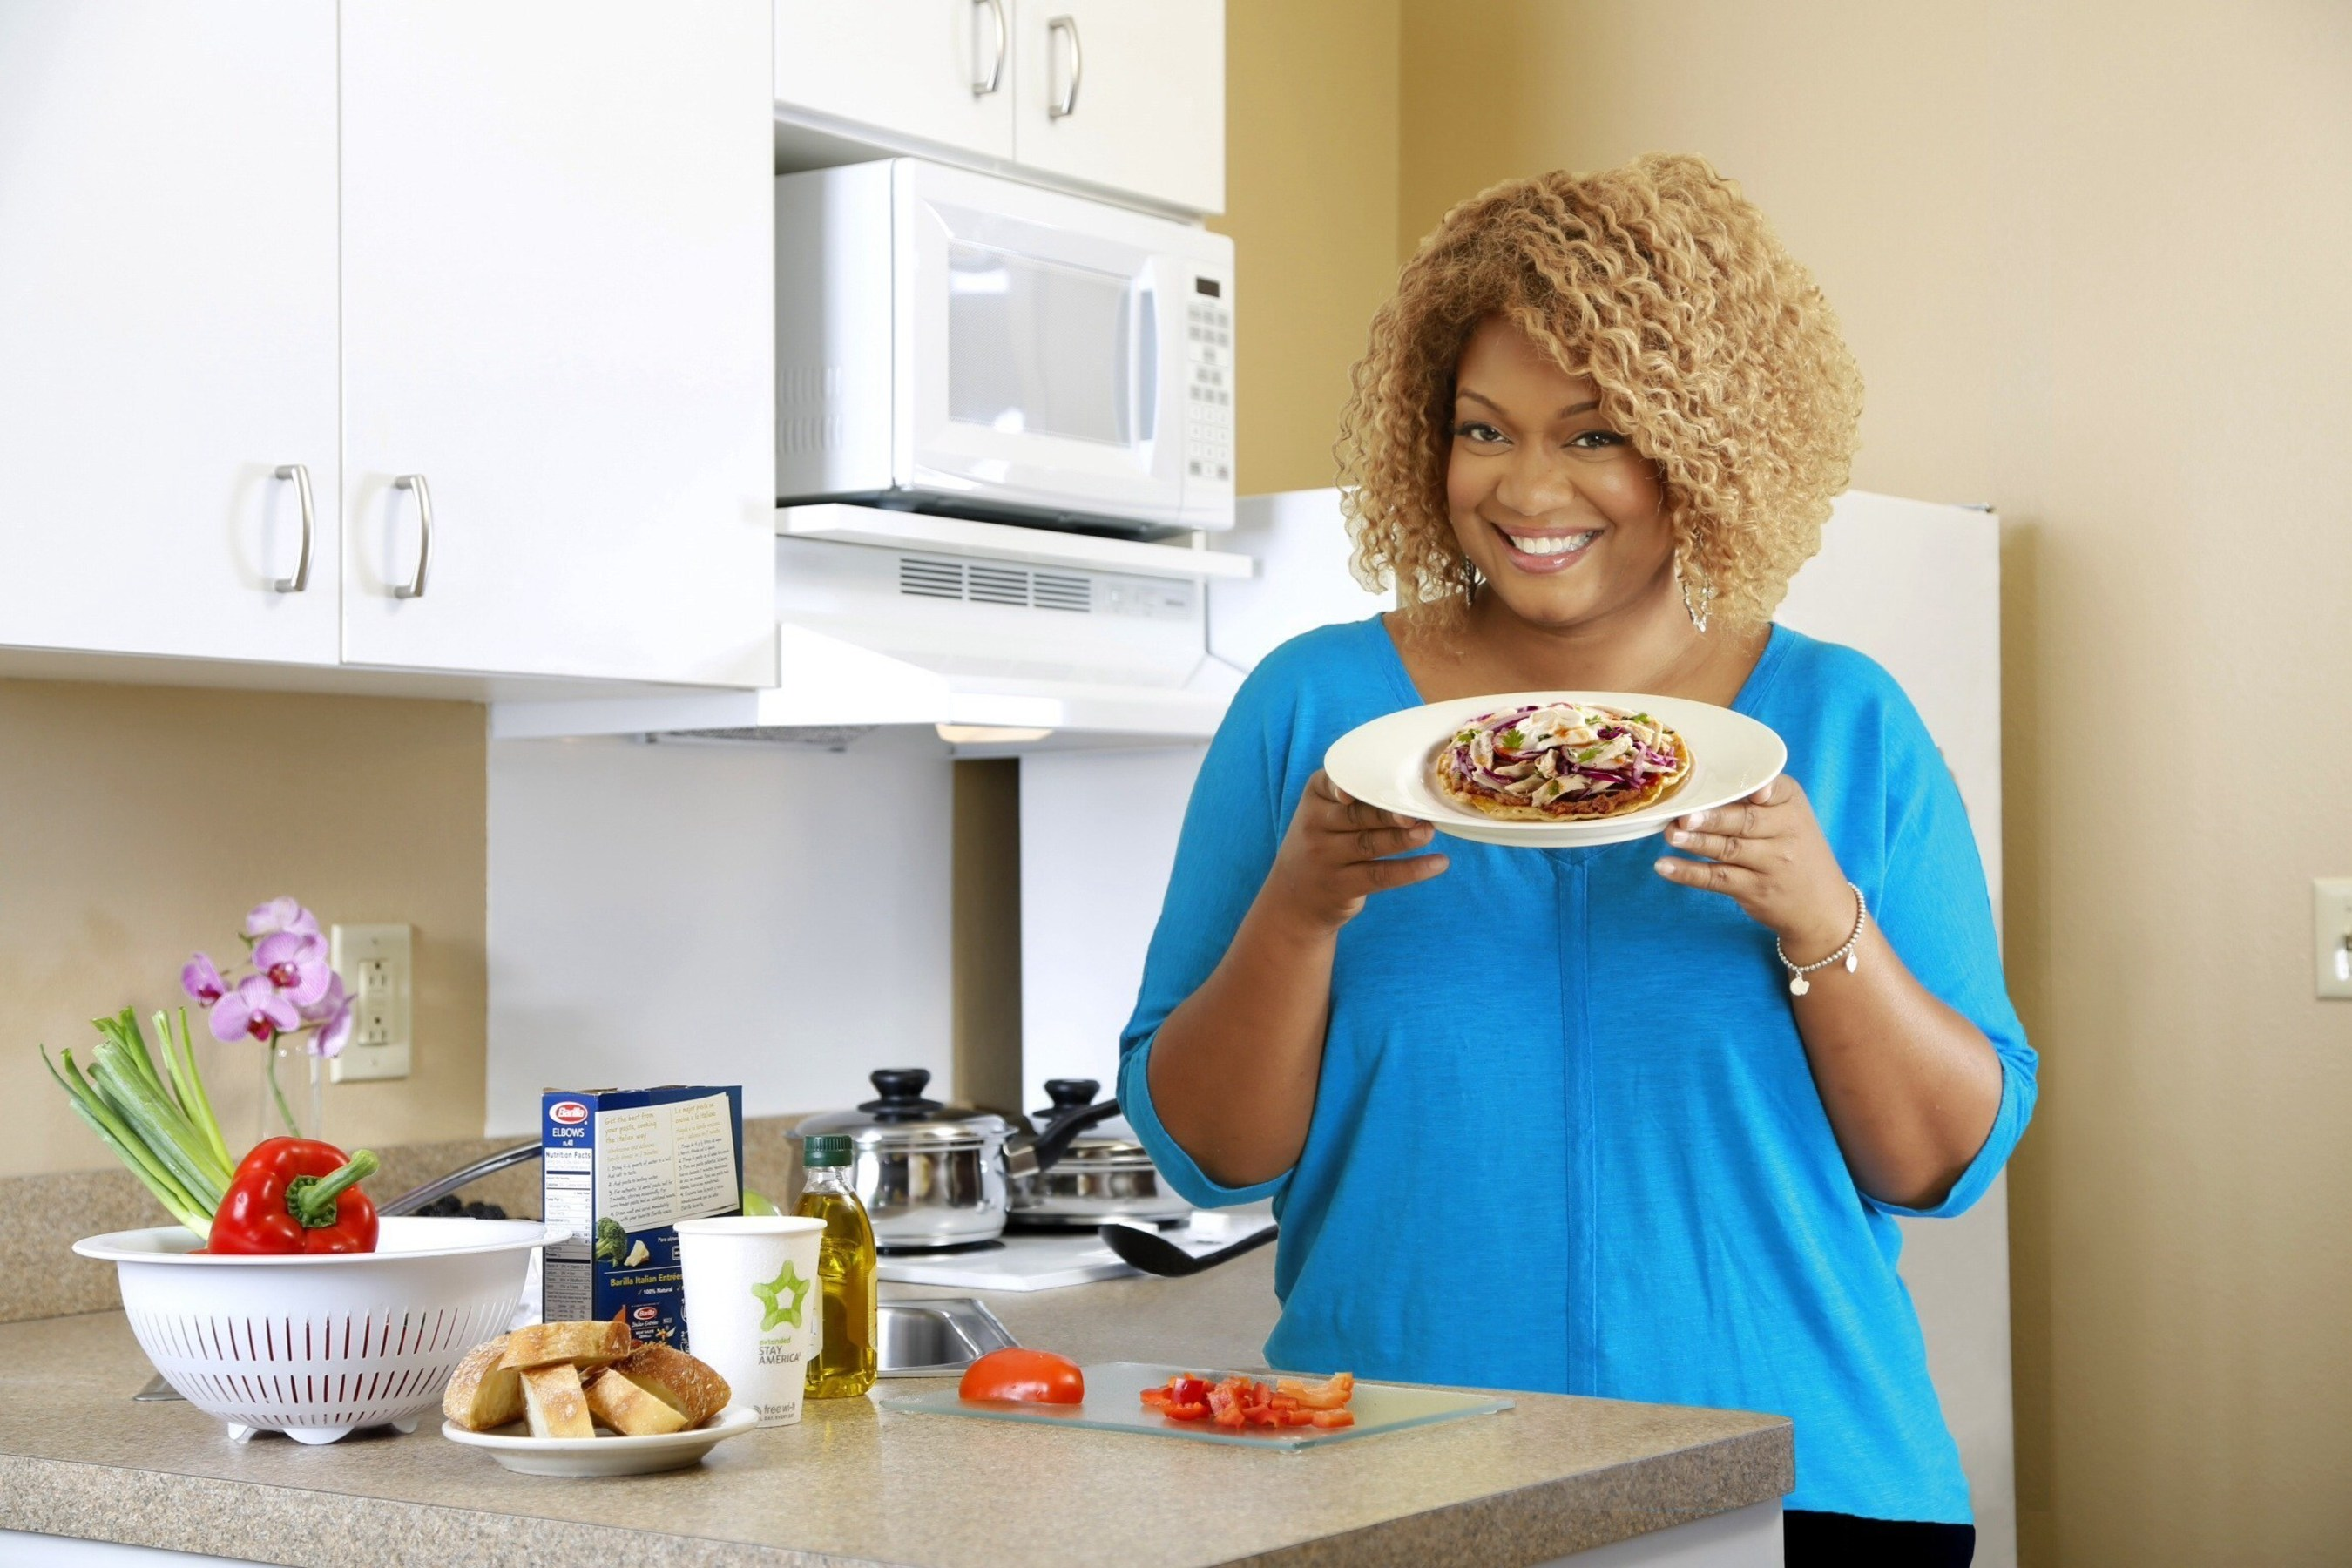 Rachael Ray, Sunny Anderson and Extended Stay America Hotels Team Up To Fight Hunger